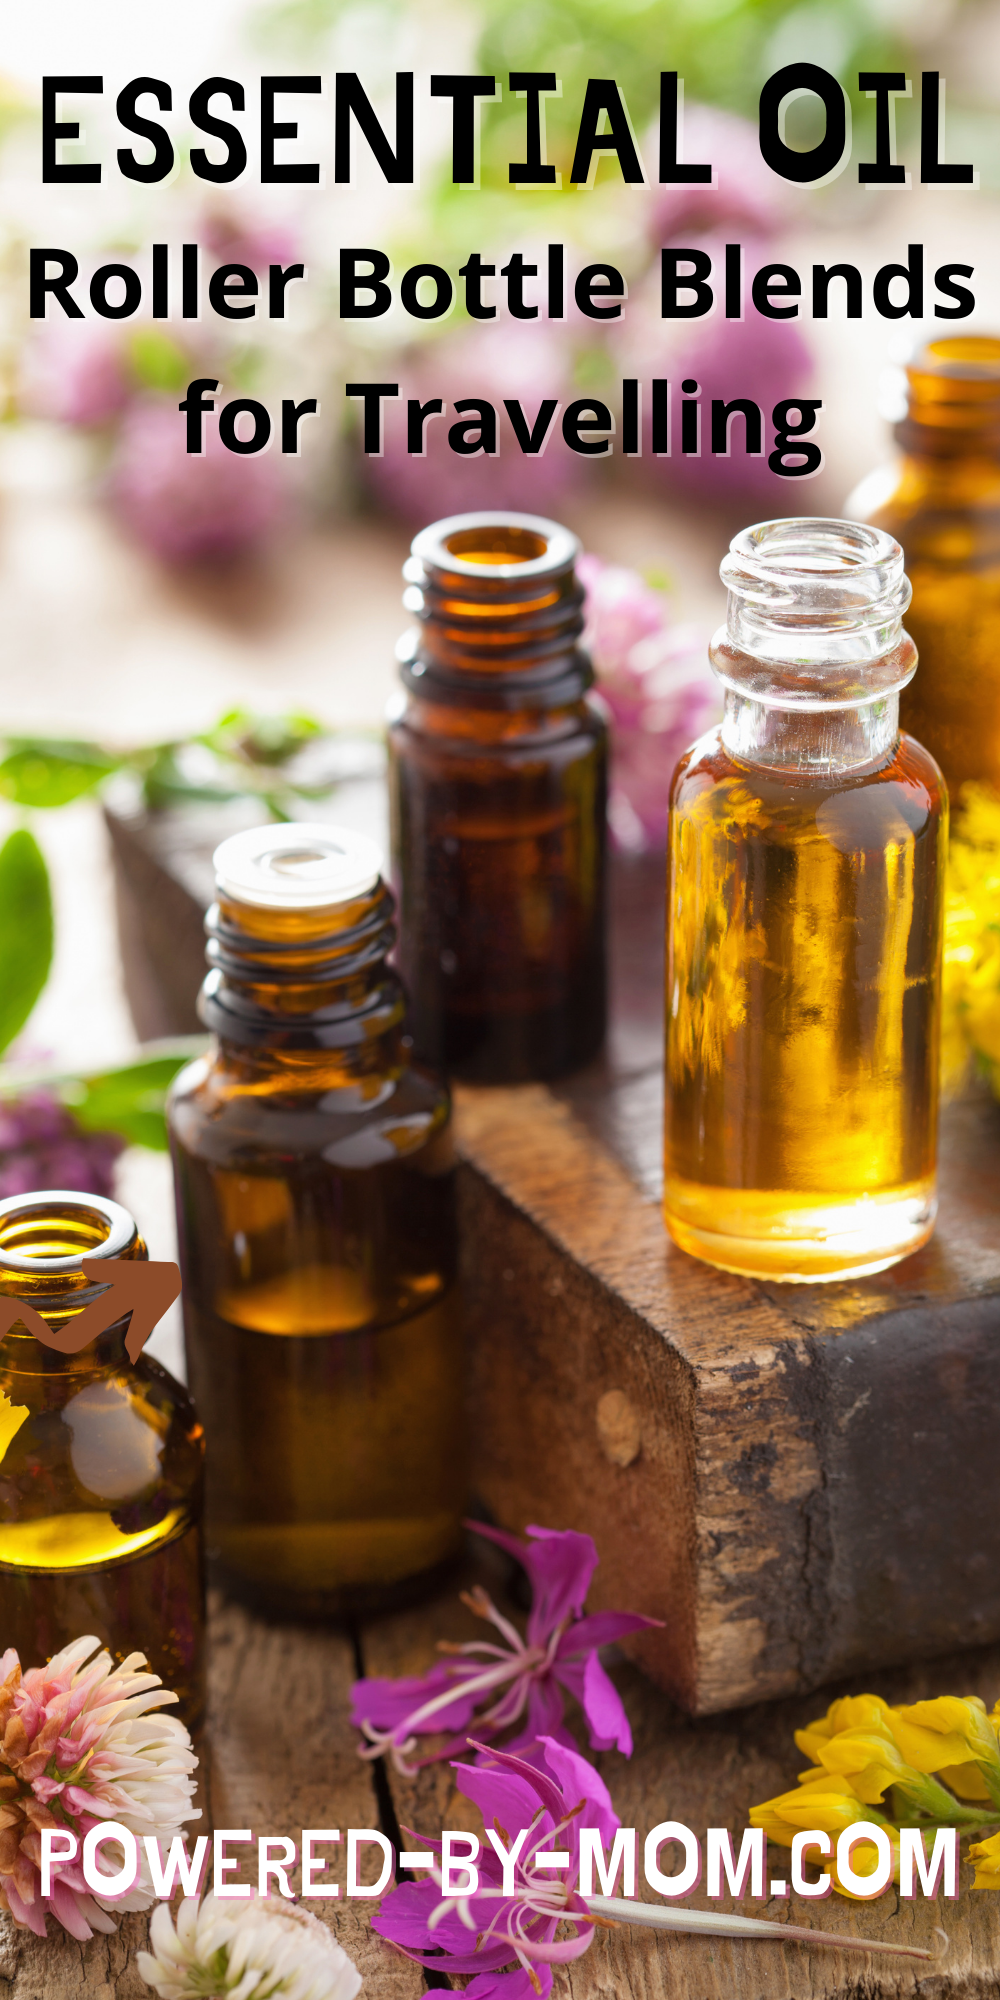 Love essential oil roller bottle blends? We do too and we're sharing some of our favourite blends for travelling any time of the year.